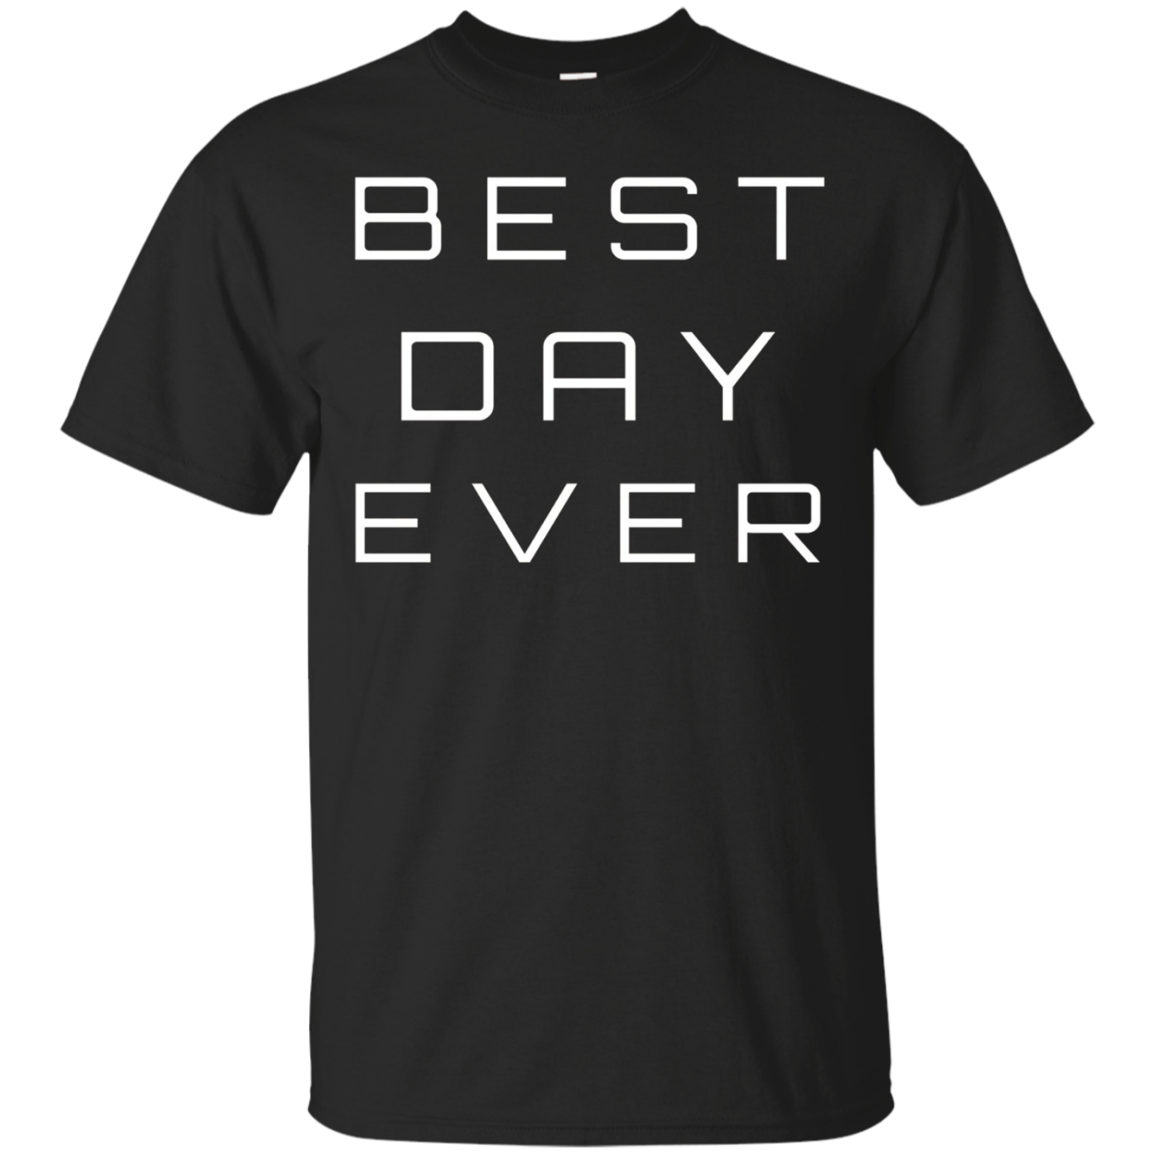 Best Day Ever T-shirt, Statement Tee